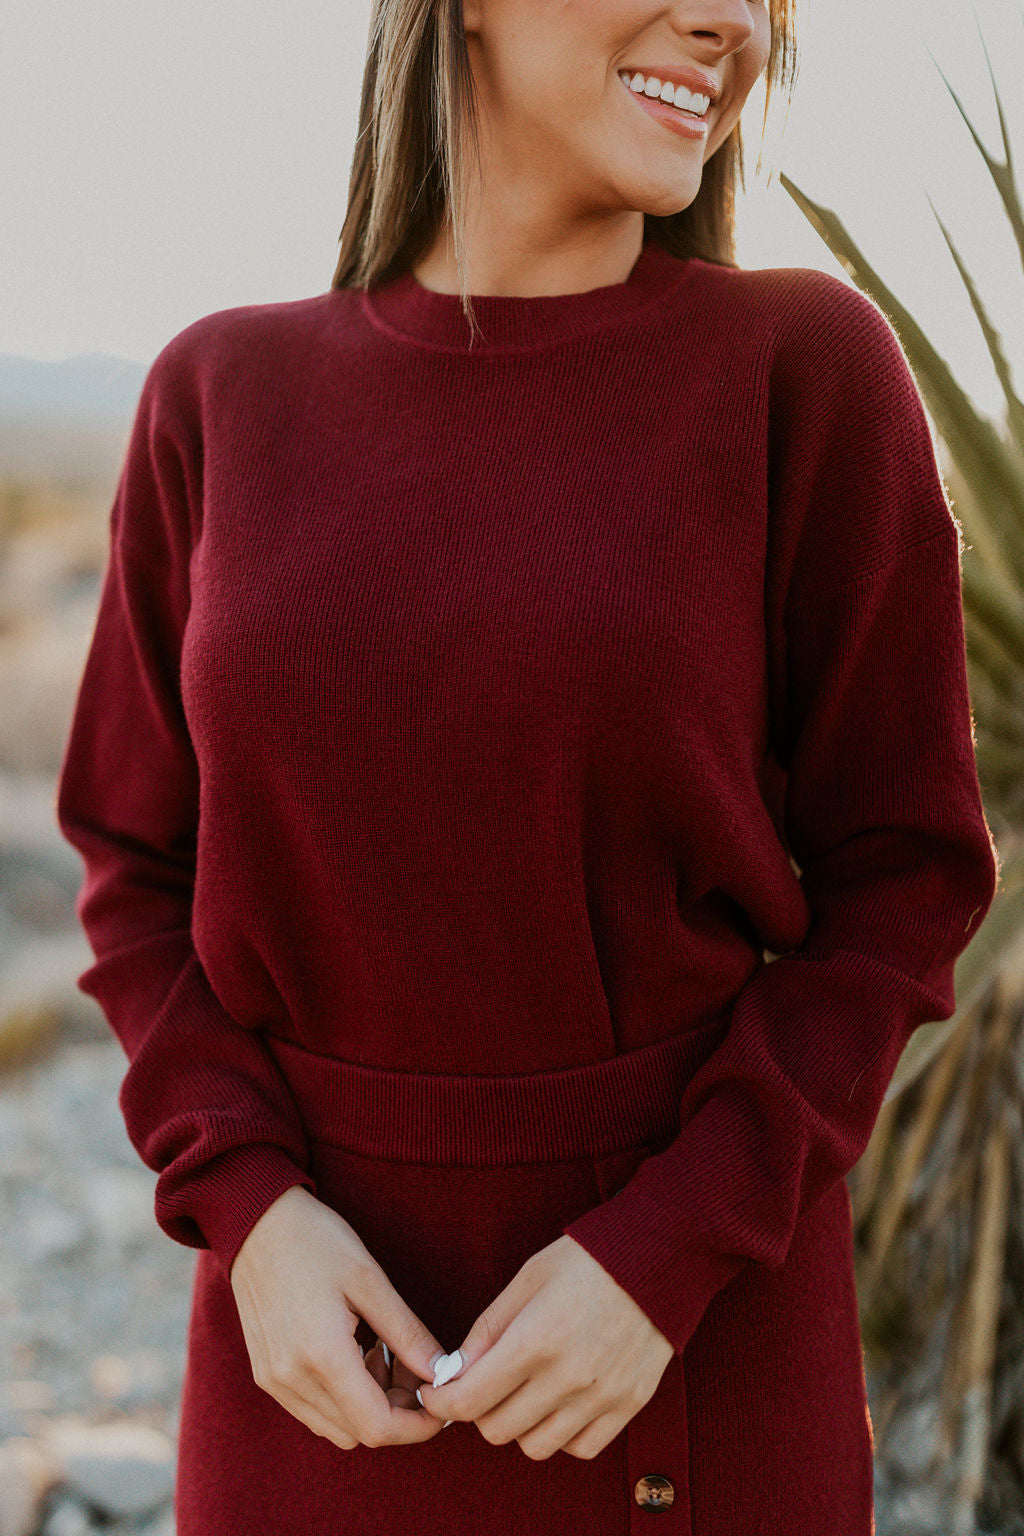 THE CENTENNIAL PARK SWEATER IN BURGUNDY